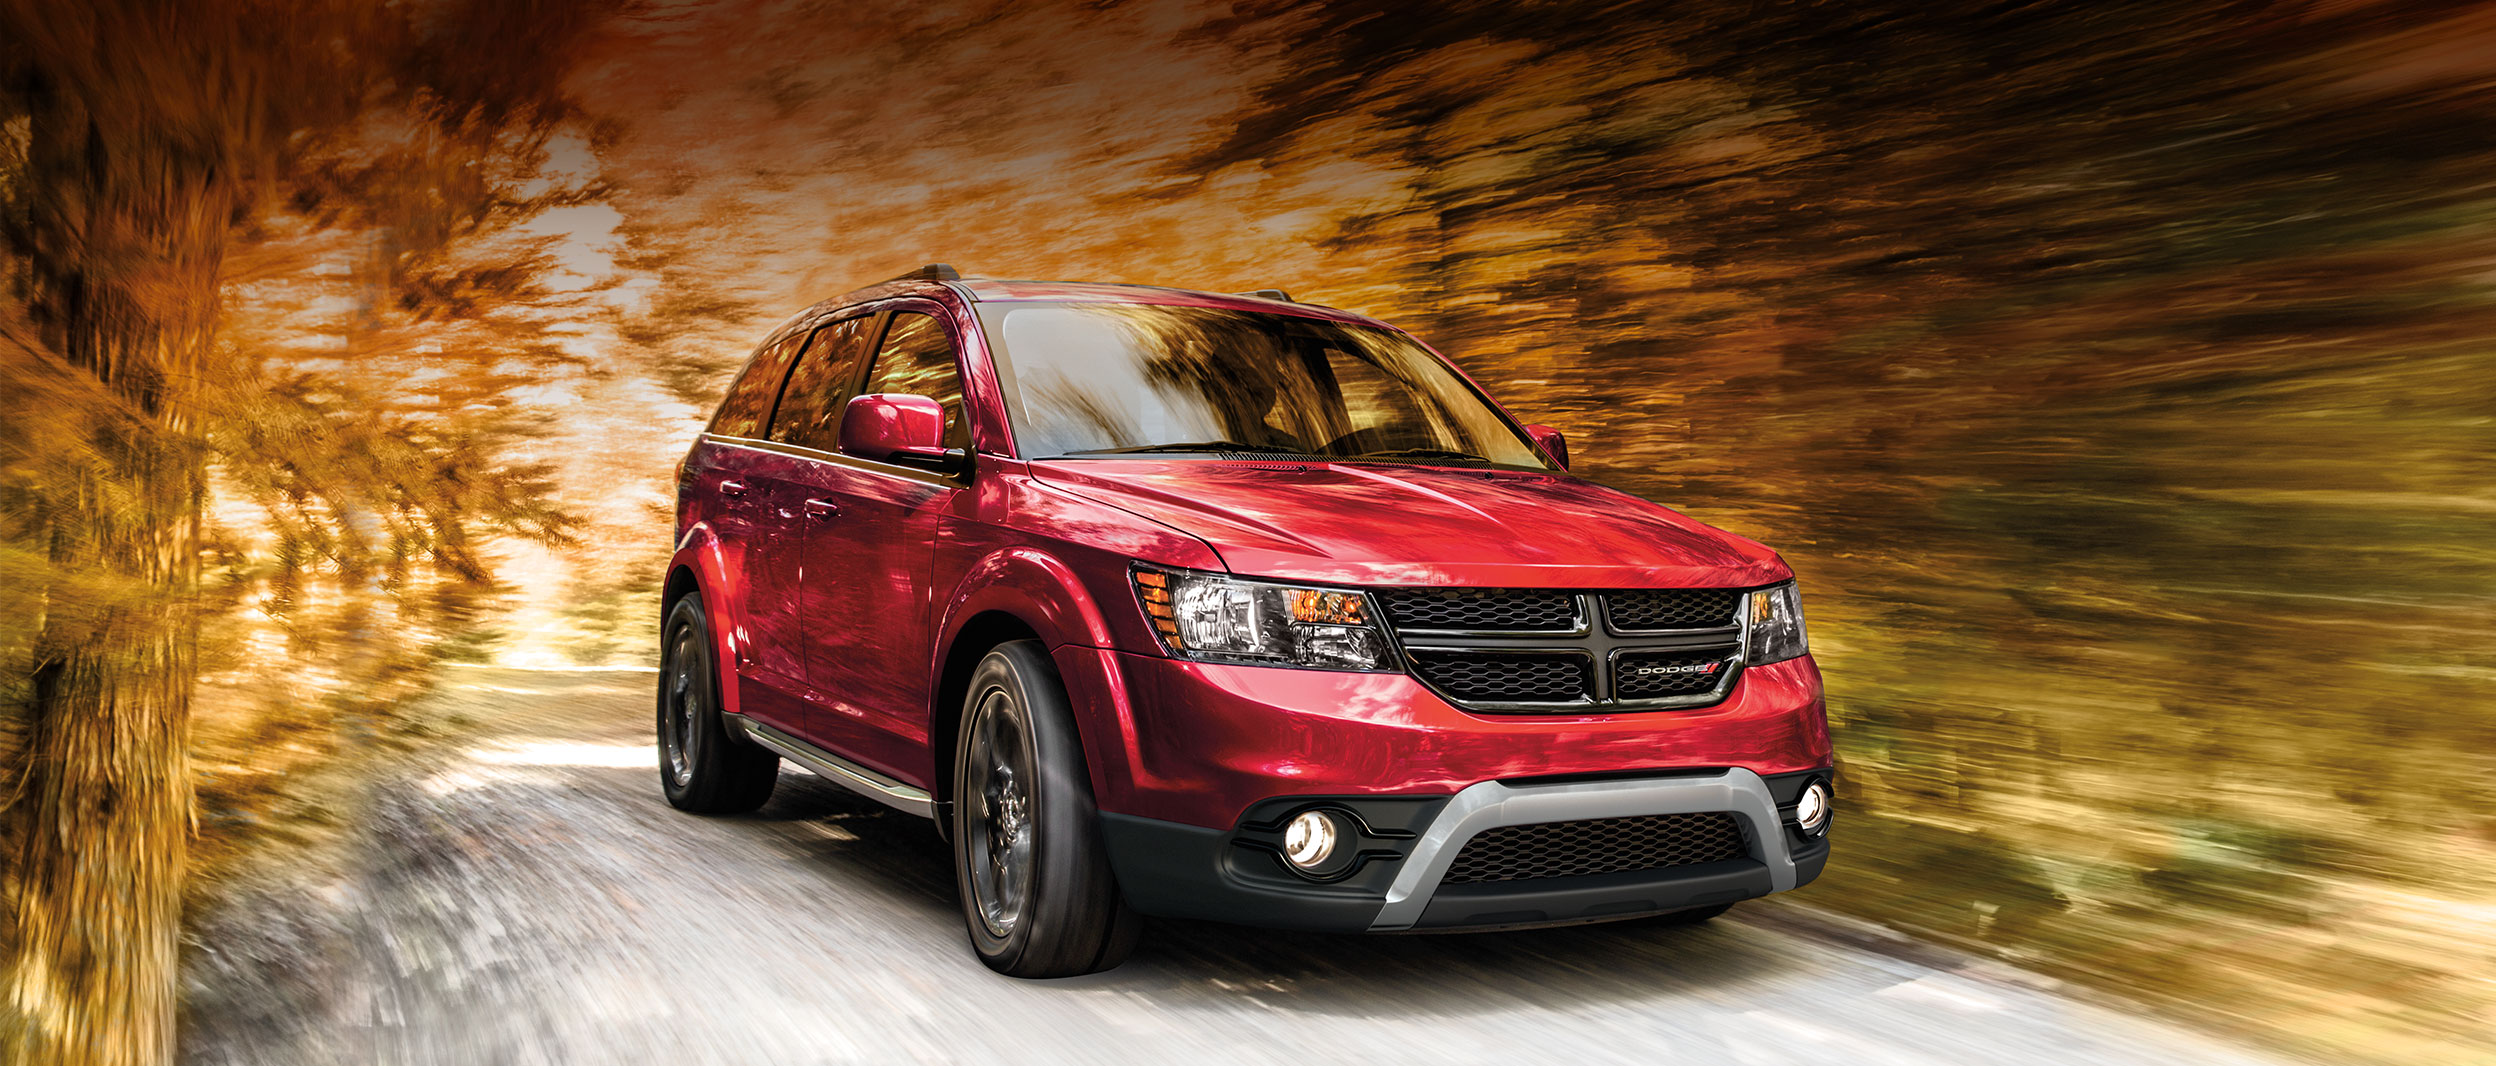 2018 Dodge Journey Pentastar 3.6VVT V6 engine